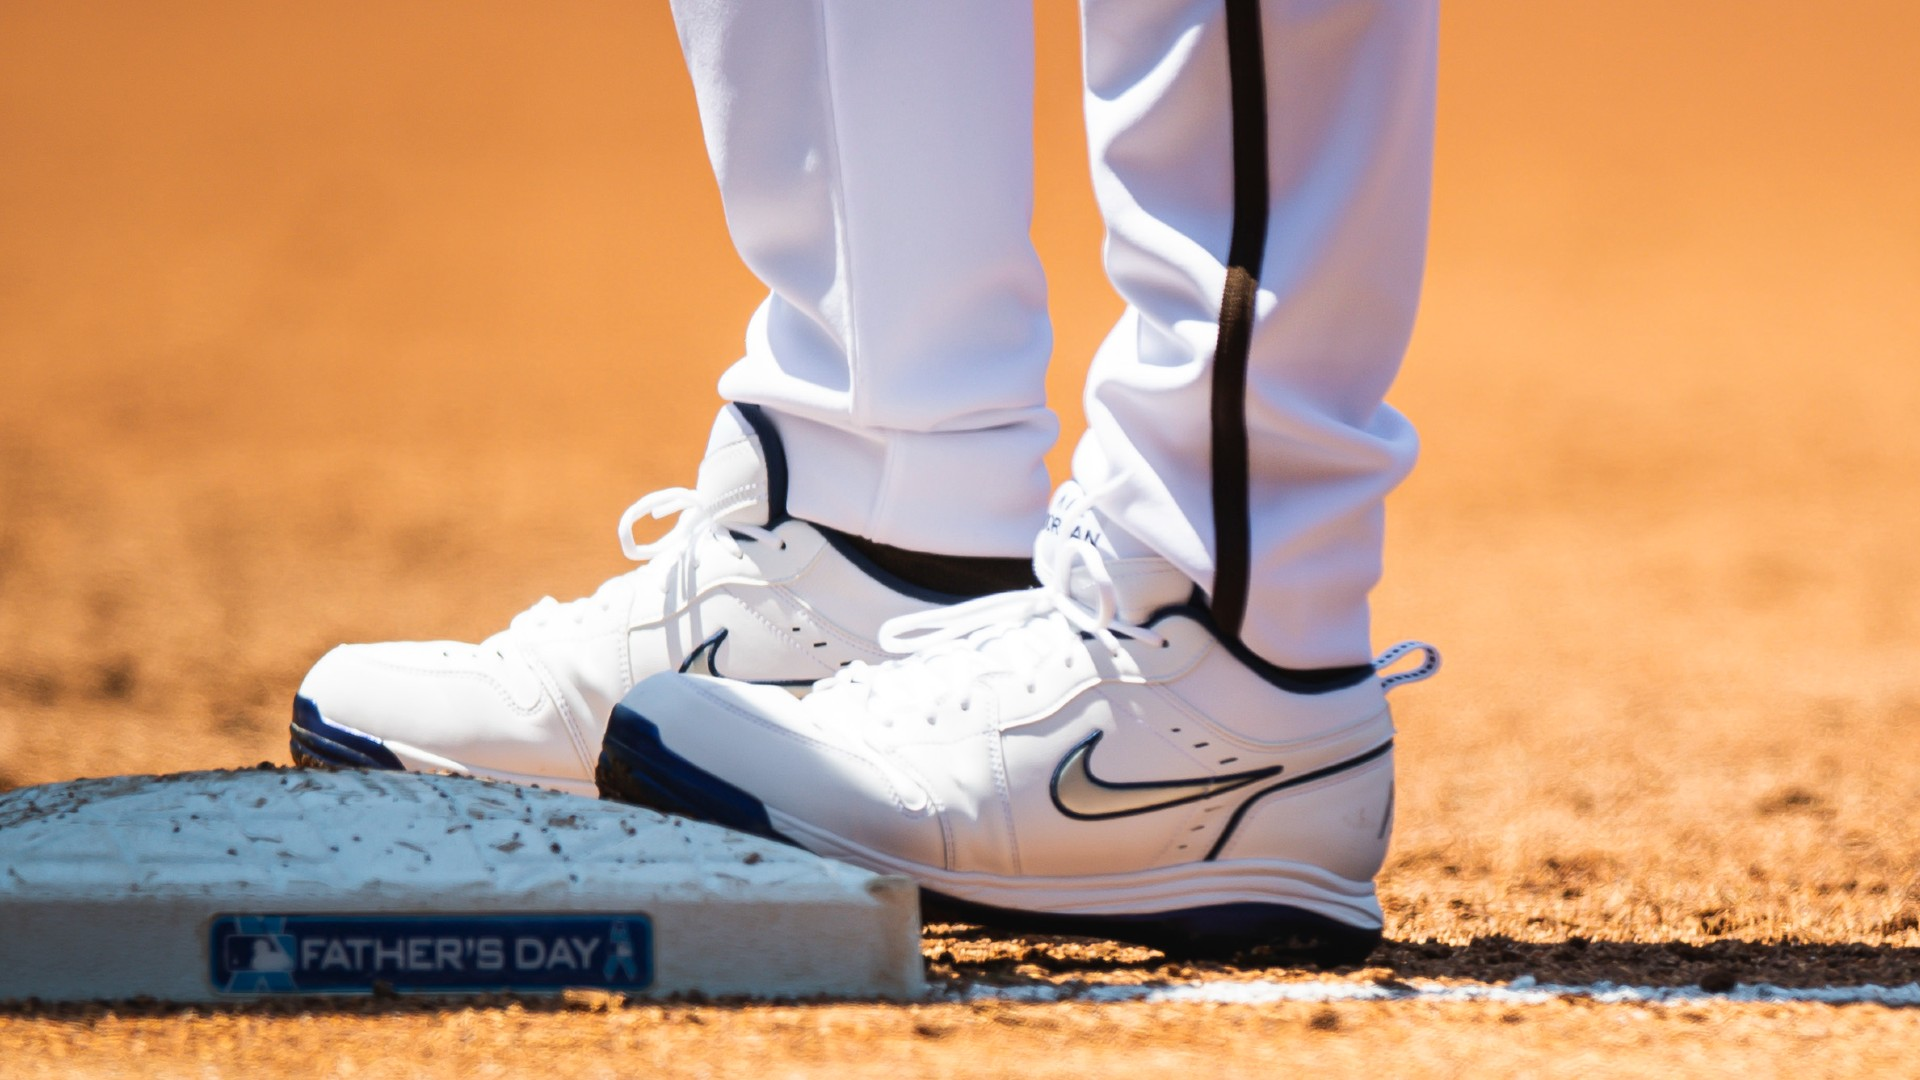 Padres 'Manny Machado wore the perfect Father's Day shoes